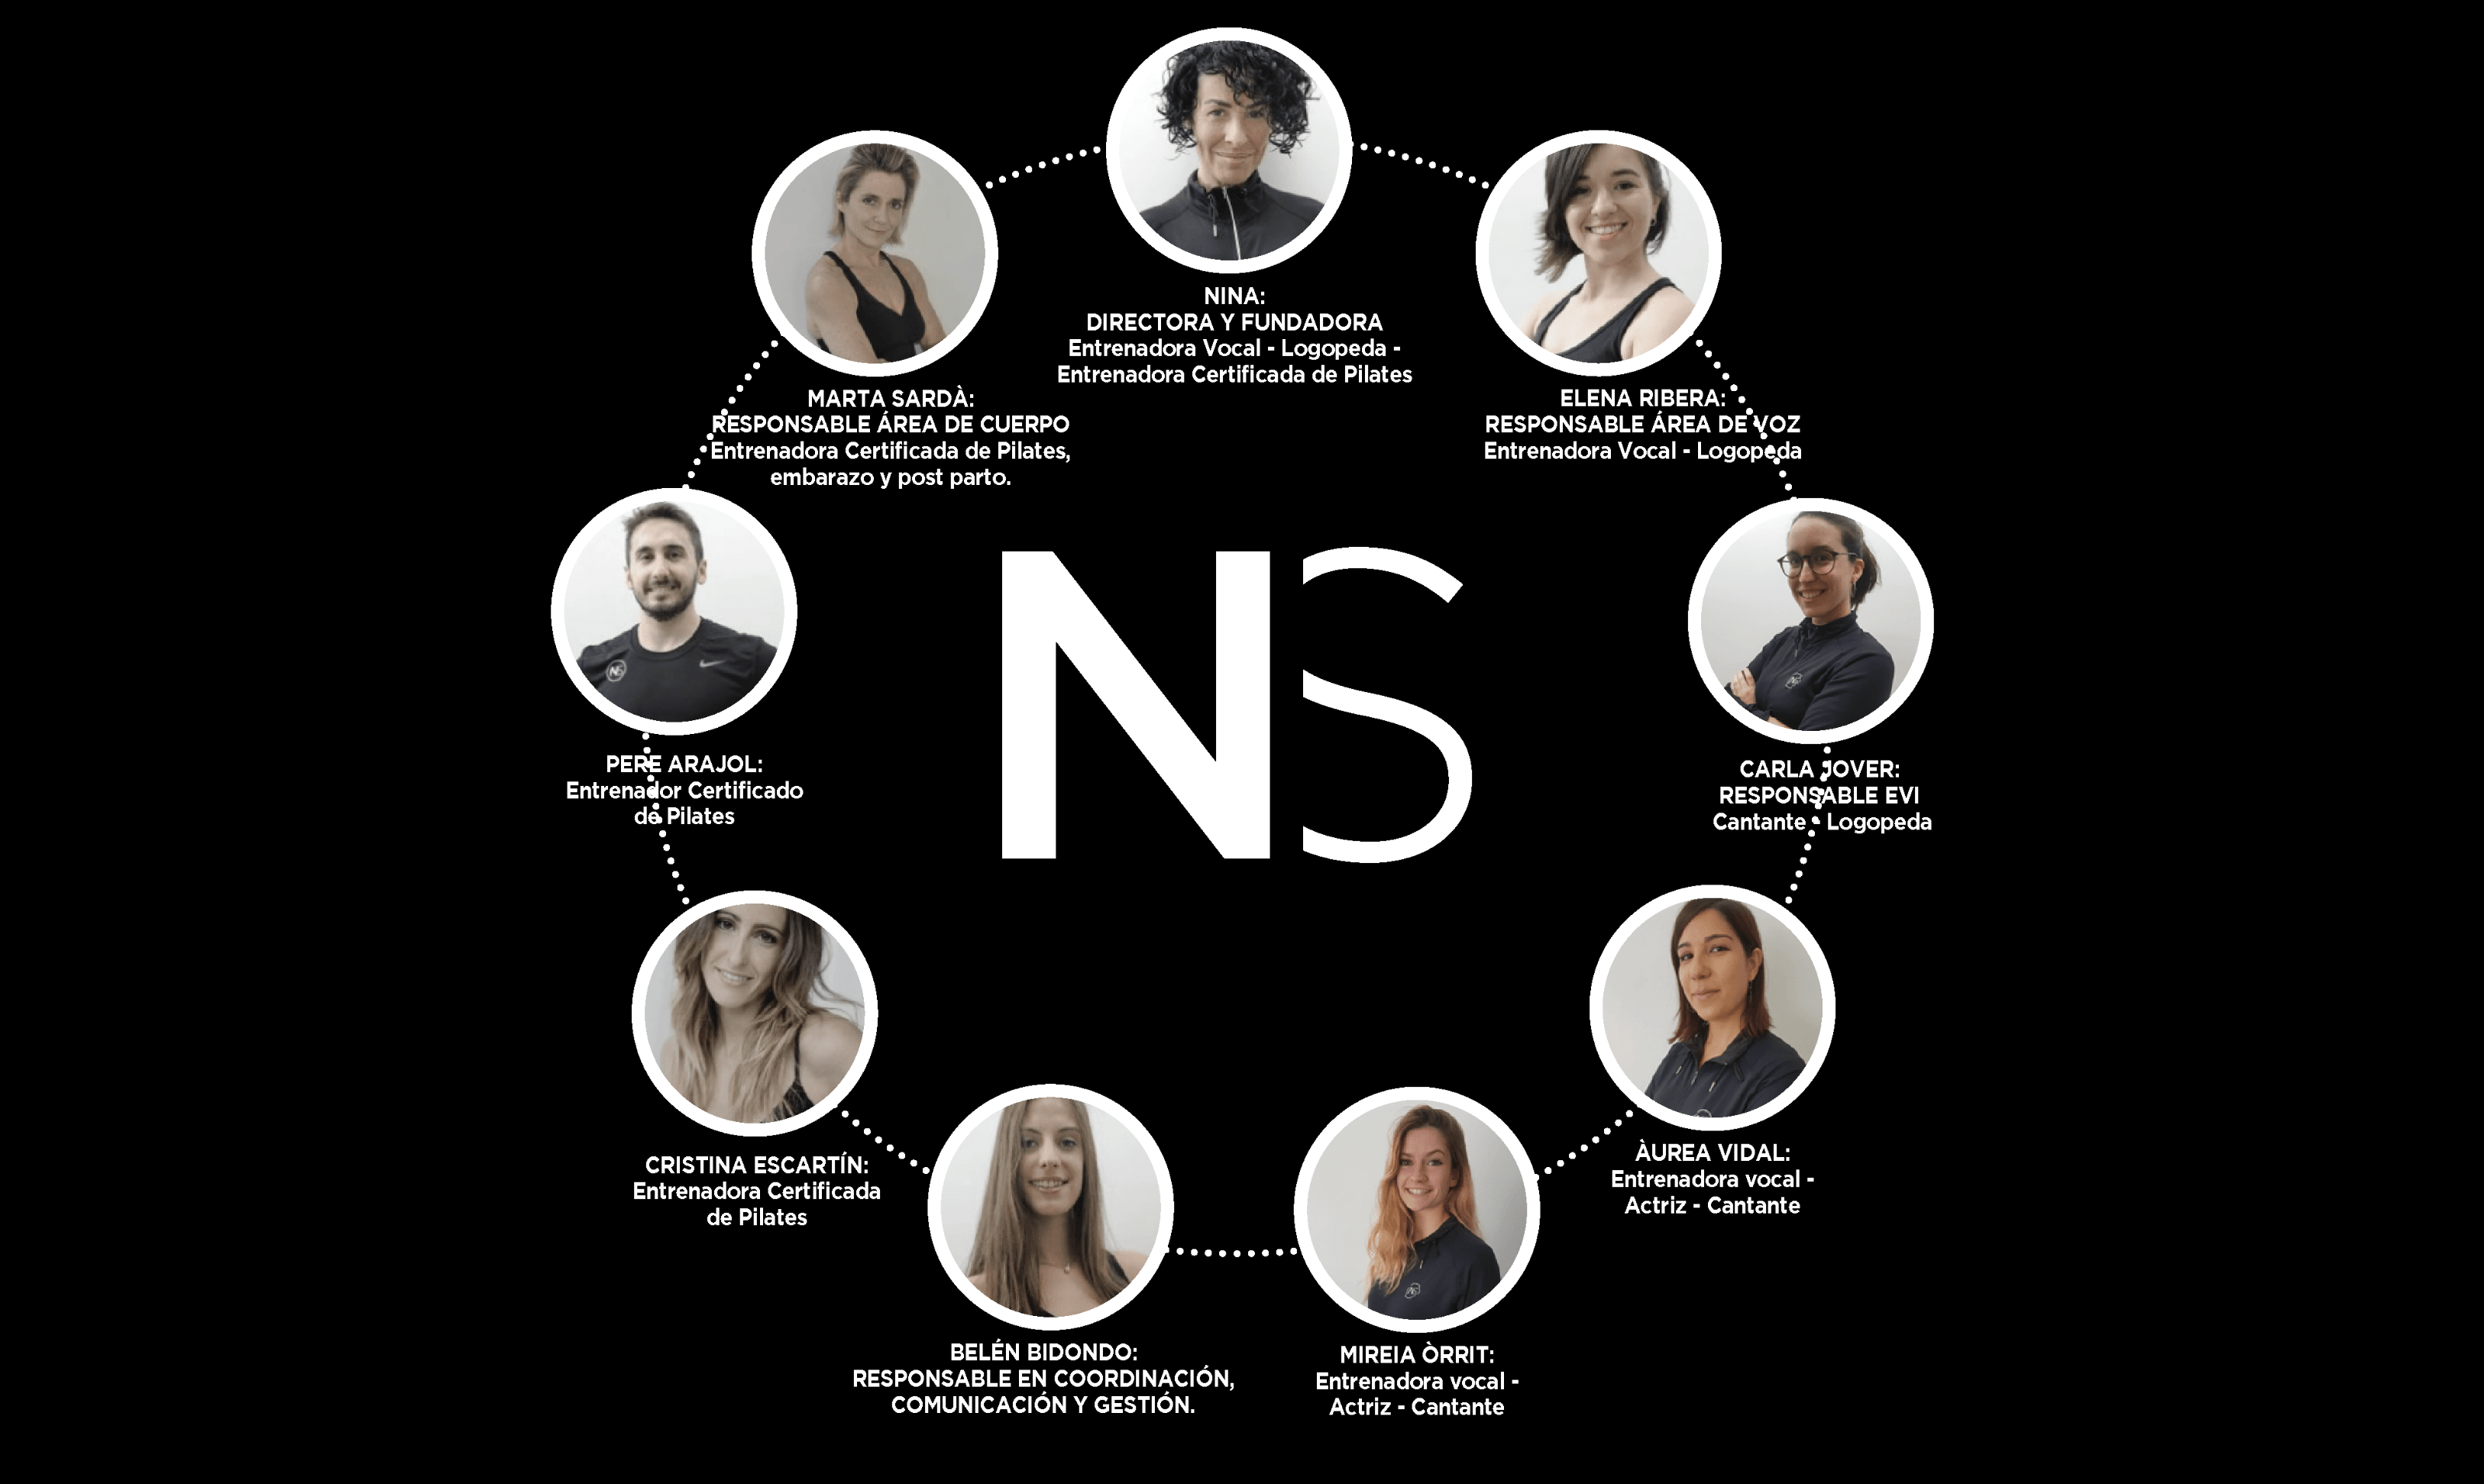 equipo_NS_cast_home